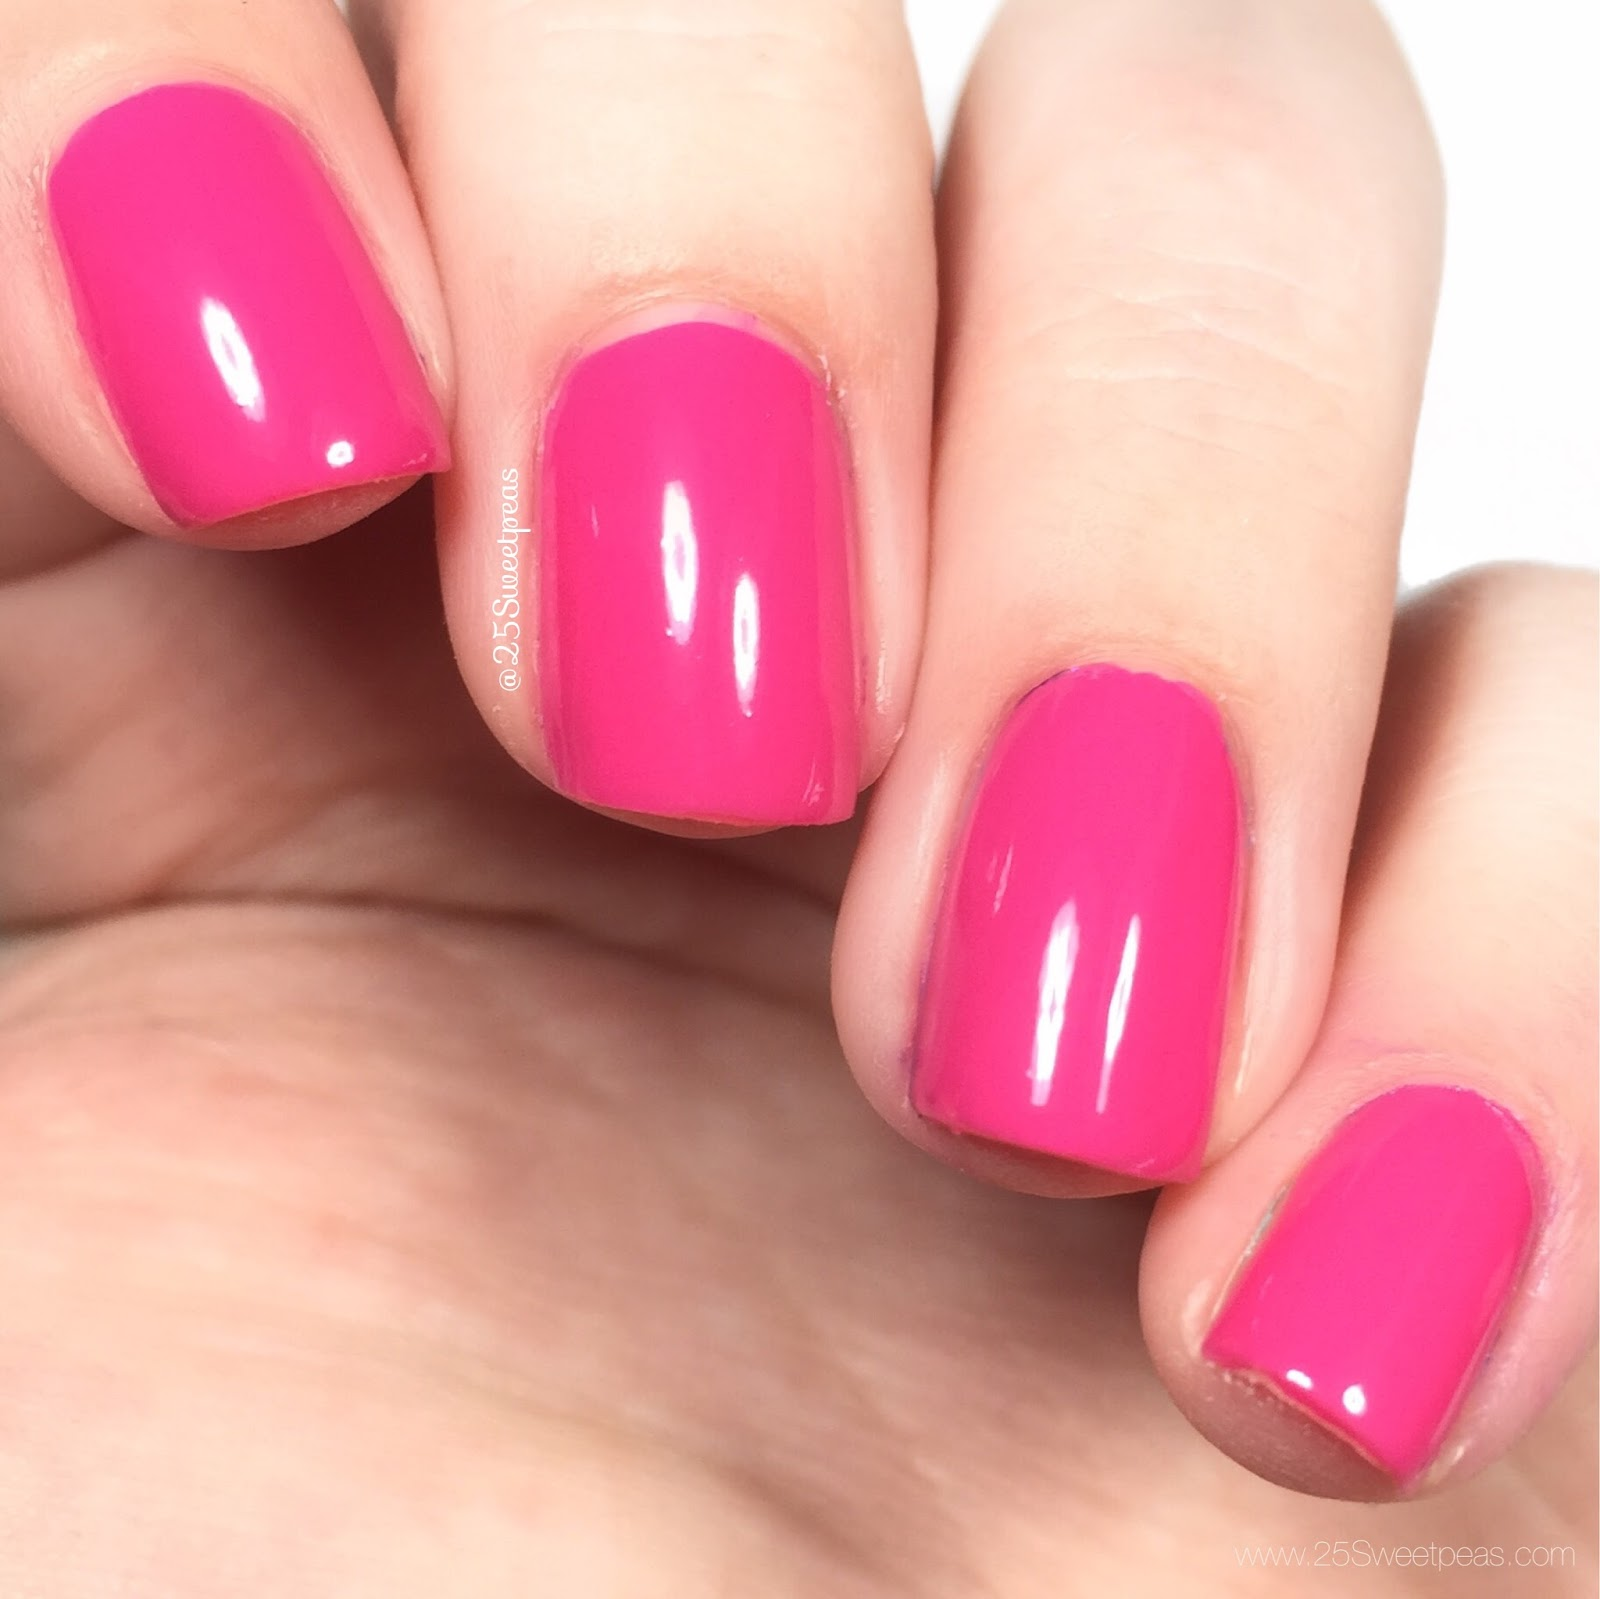 Sheer Lust Pink Punch